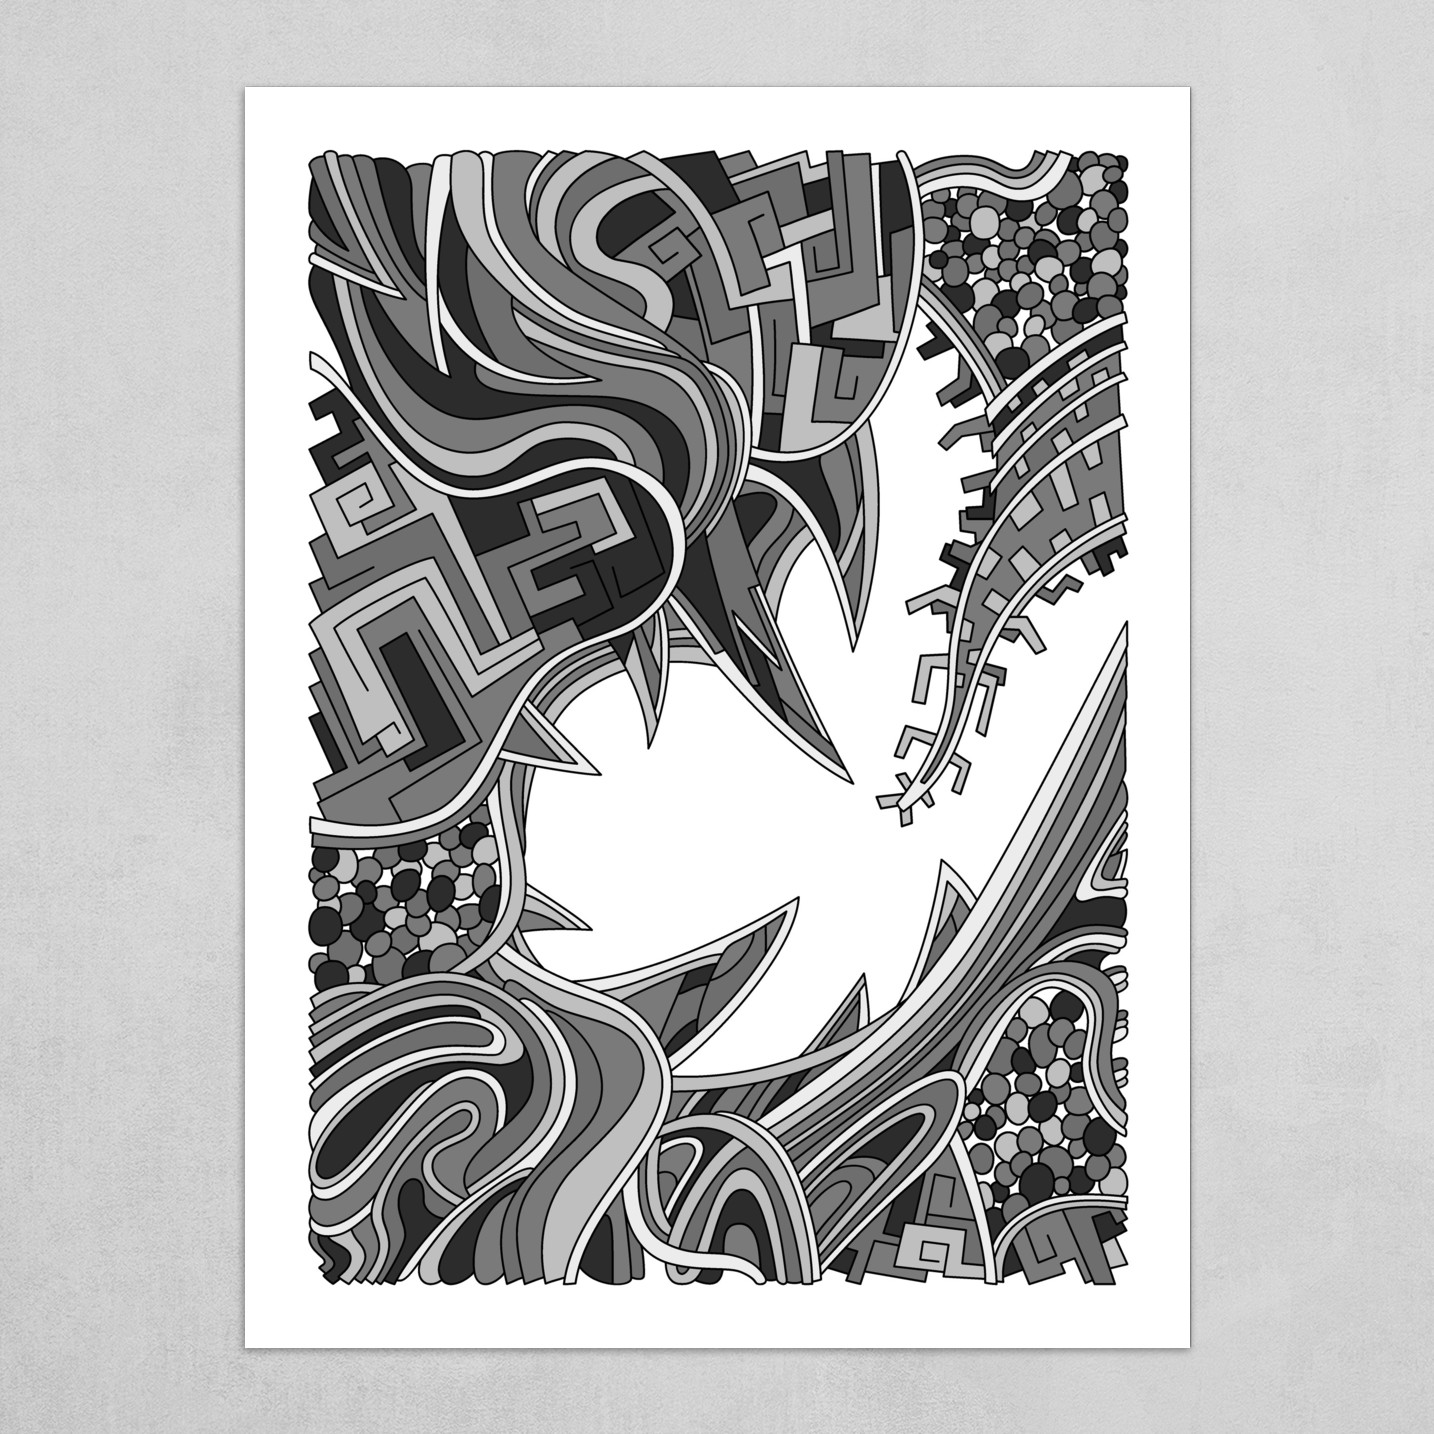 Wandering Abstract Line Art 39: Grayscale